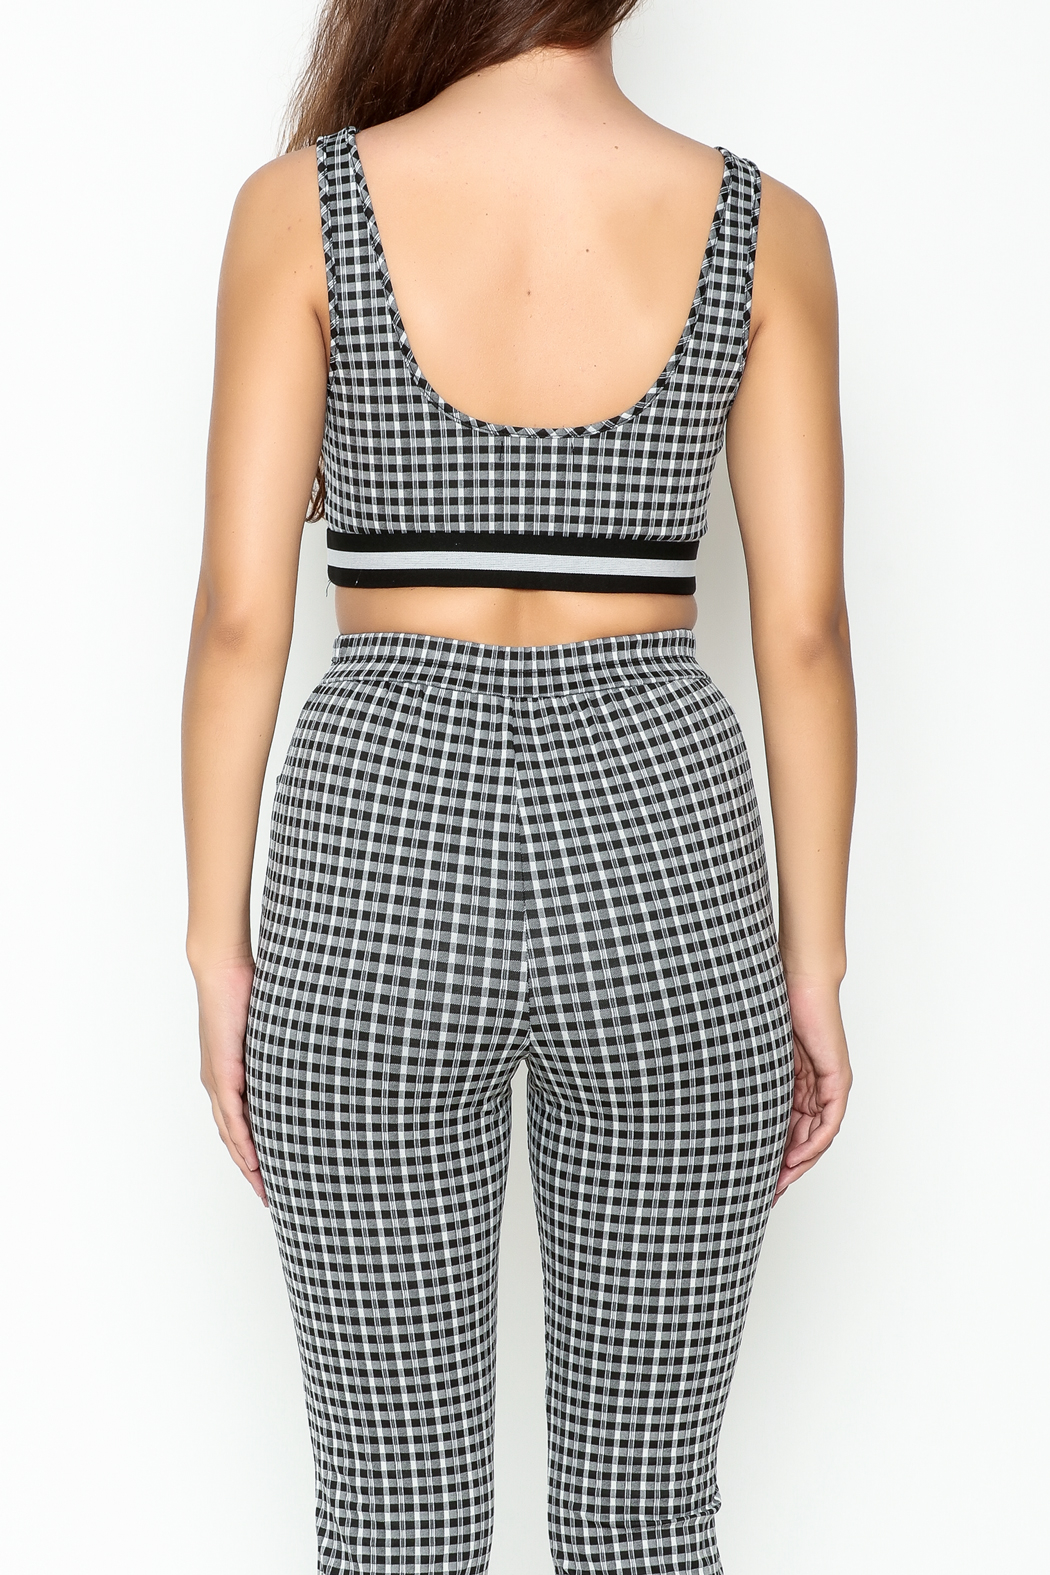 Honey Punch Gingham Bra Top - Back Cropped Image